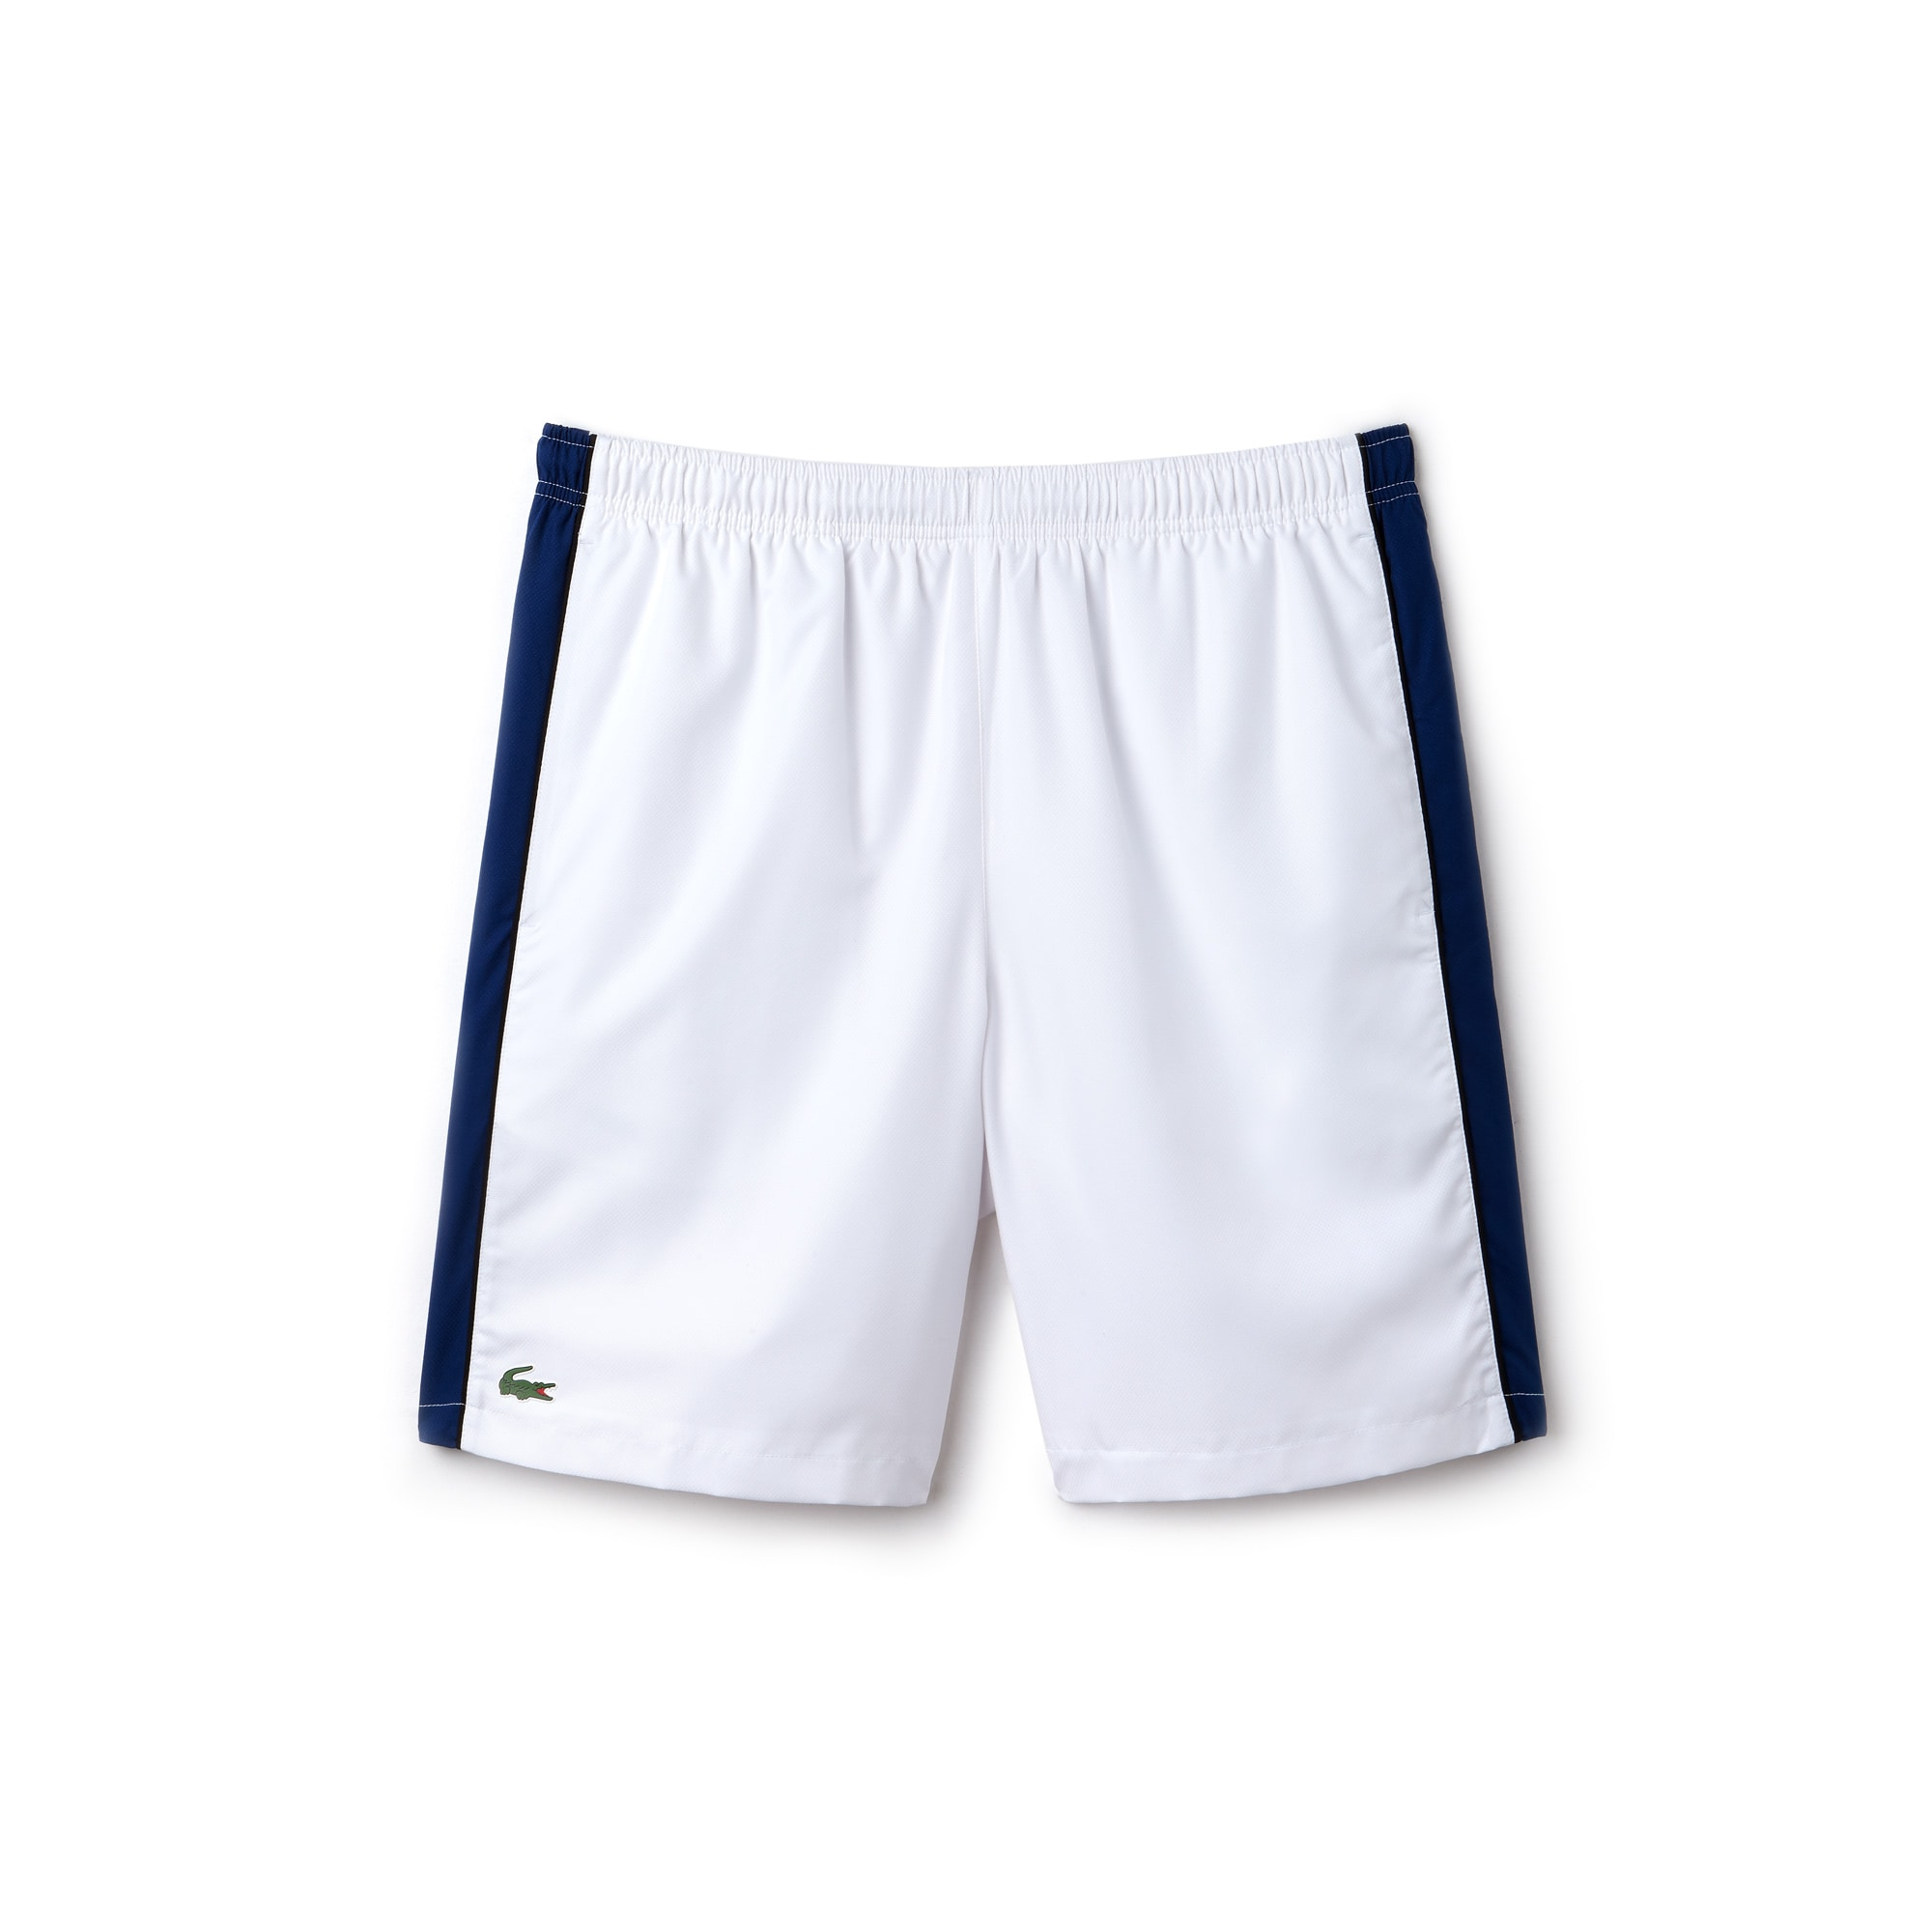 Men's LACOSTE SPORT NOVAK DJOKOVIC COLLECTION Colorblock Shorts